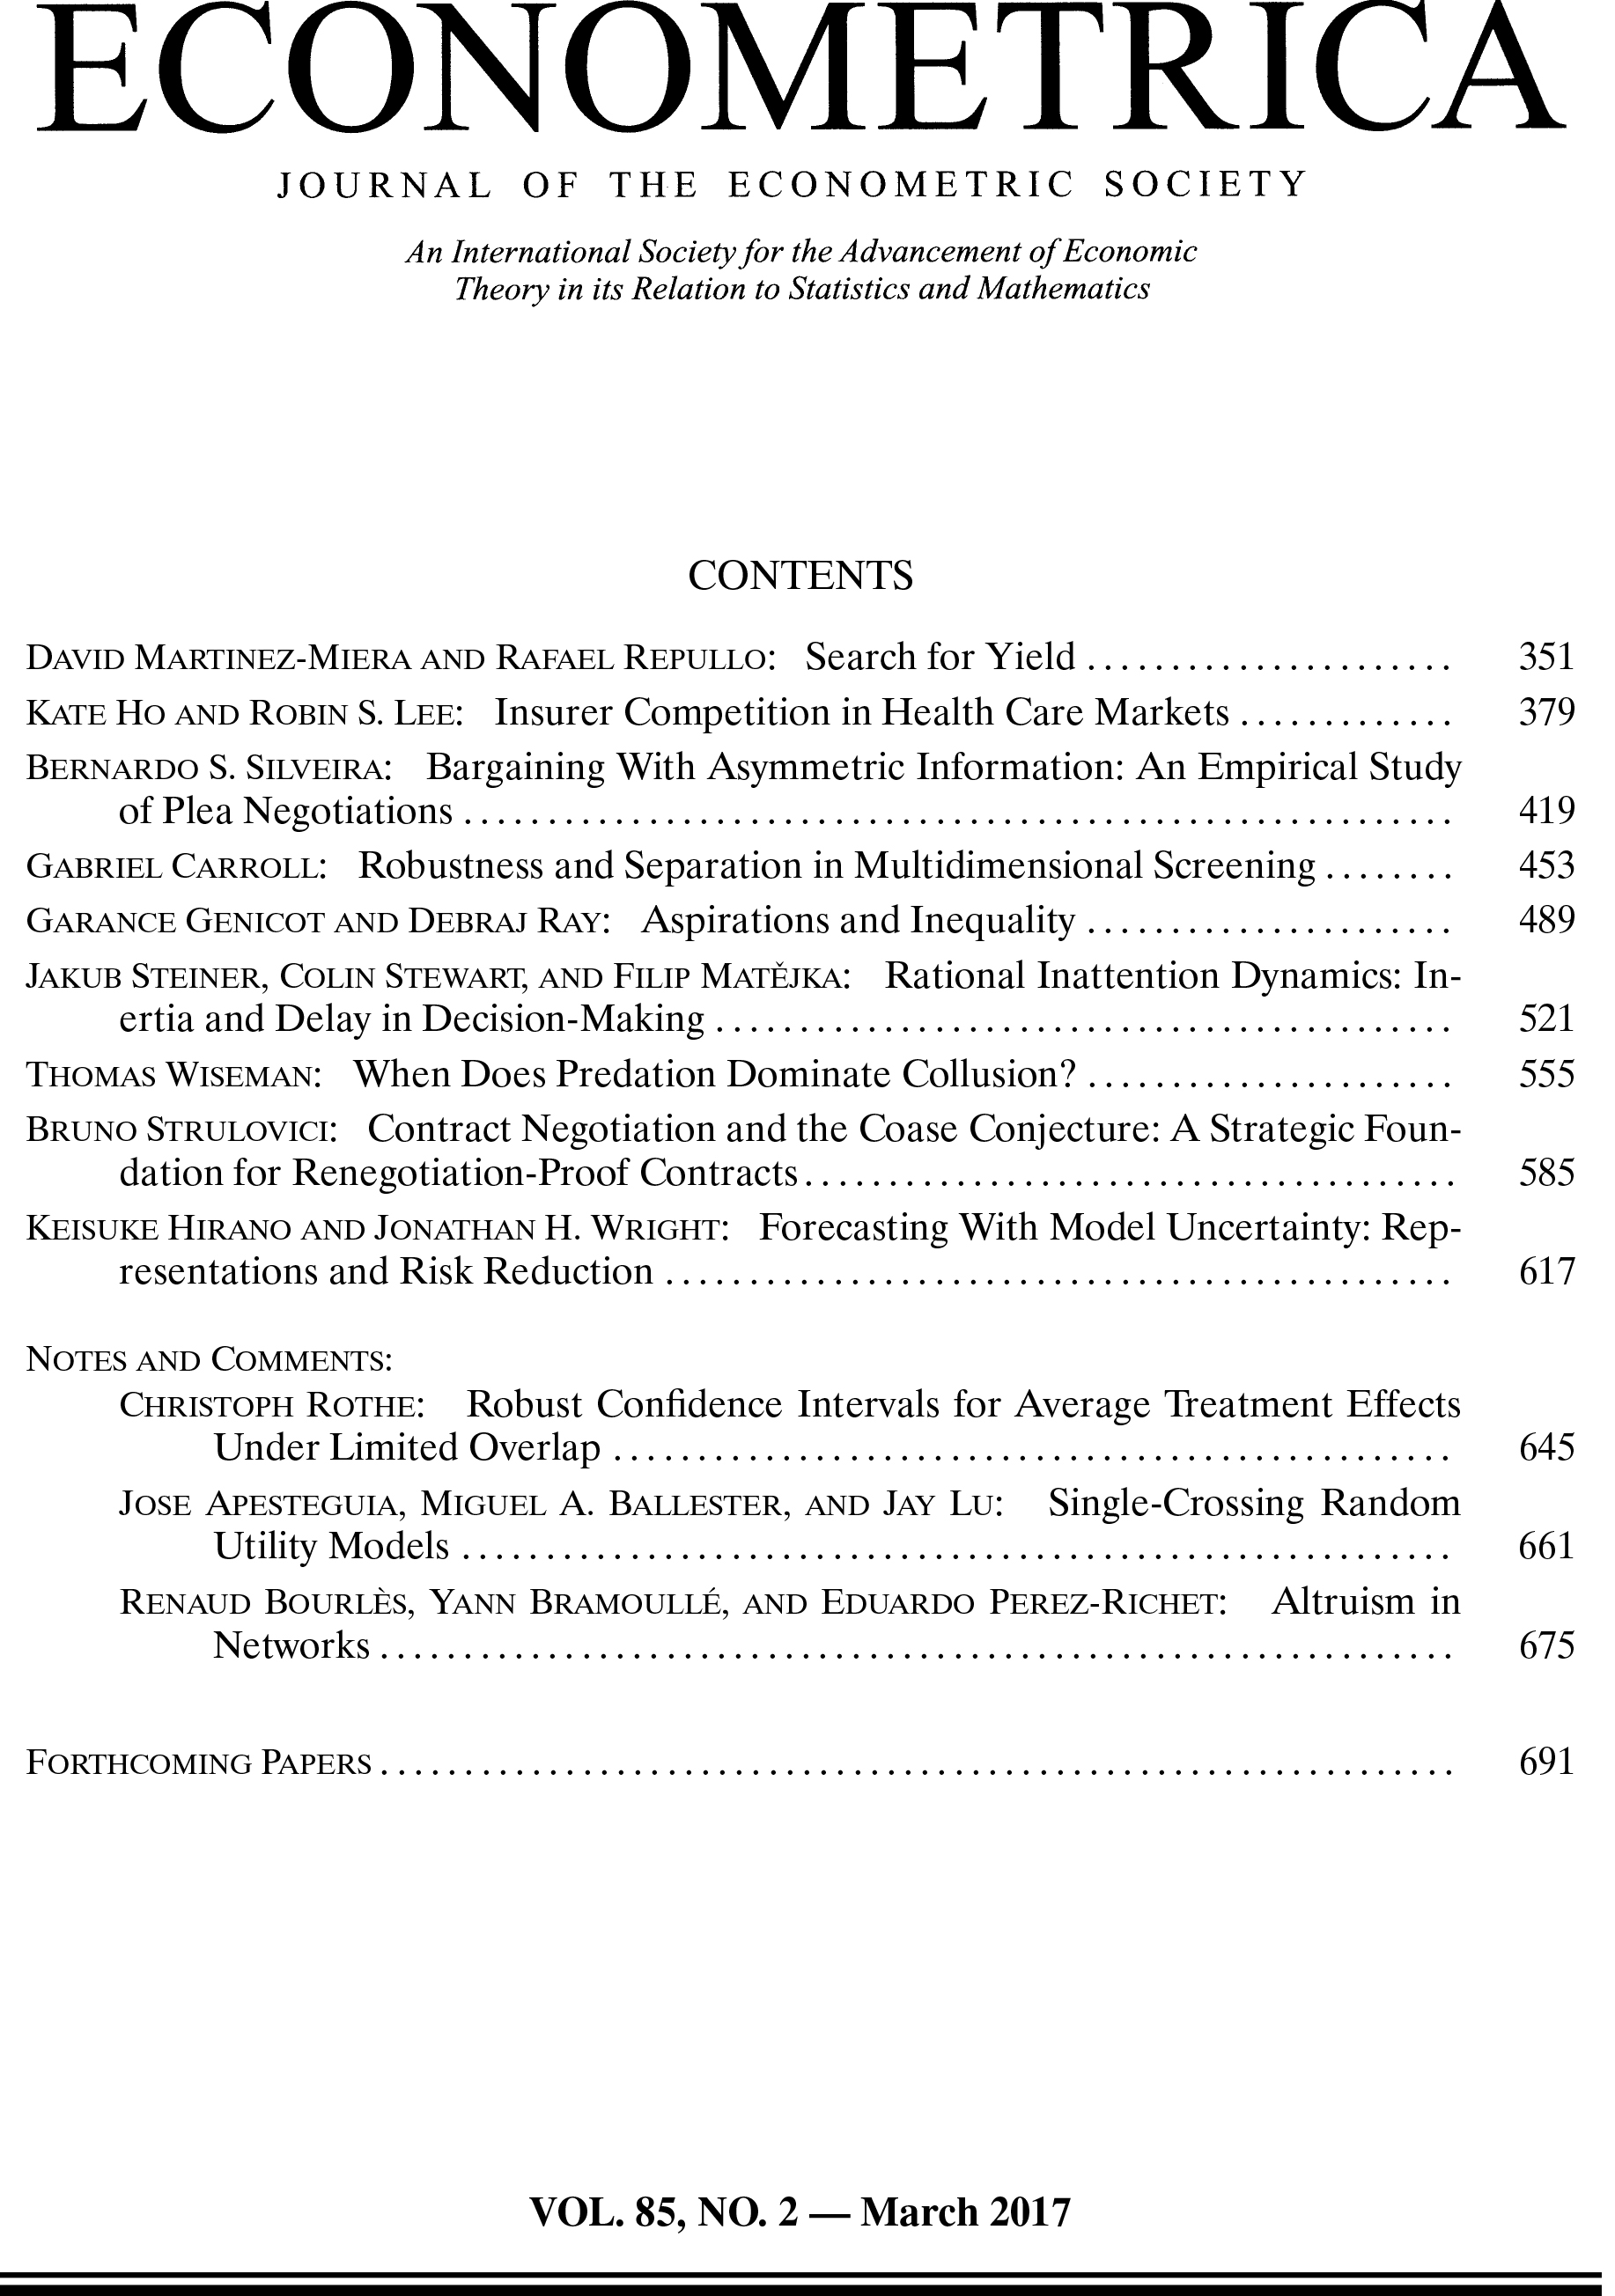 Econometrica JAN 2017, VOLUME 85, ISSUE 1